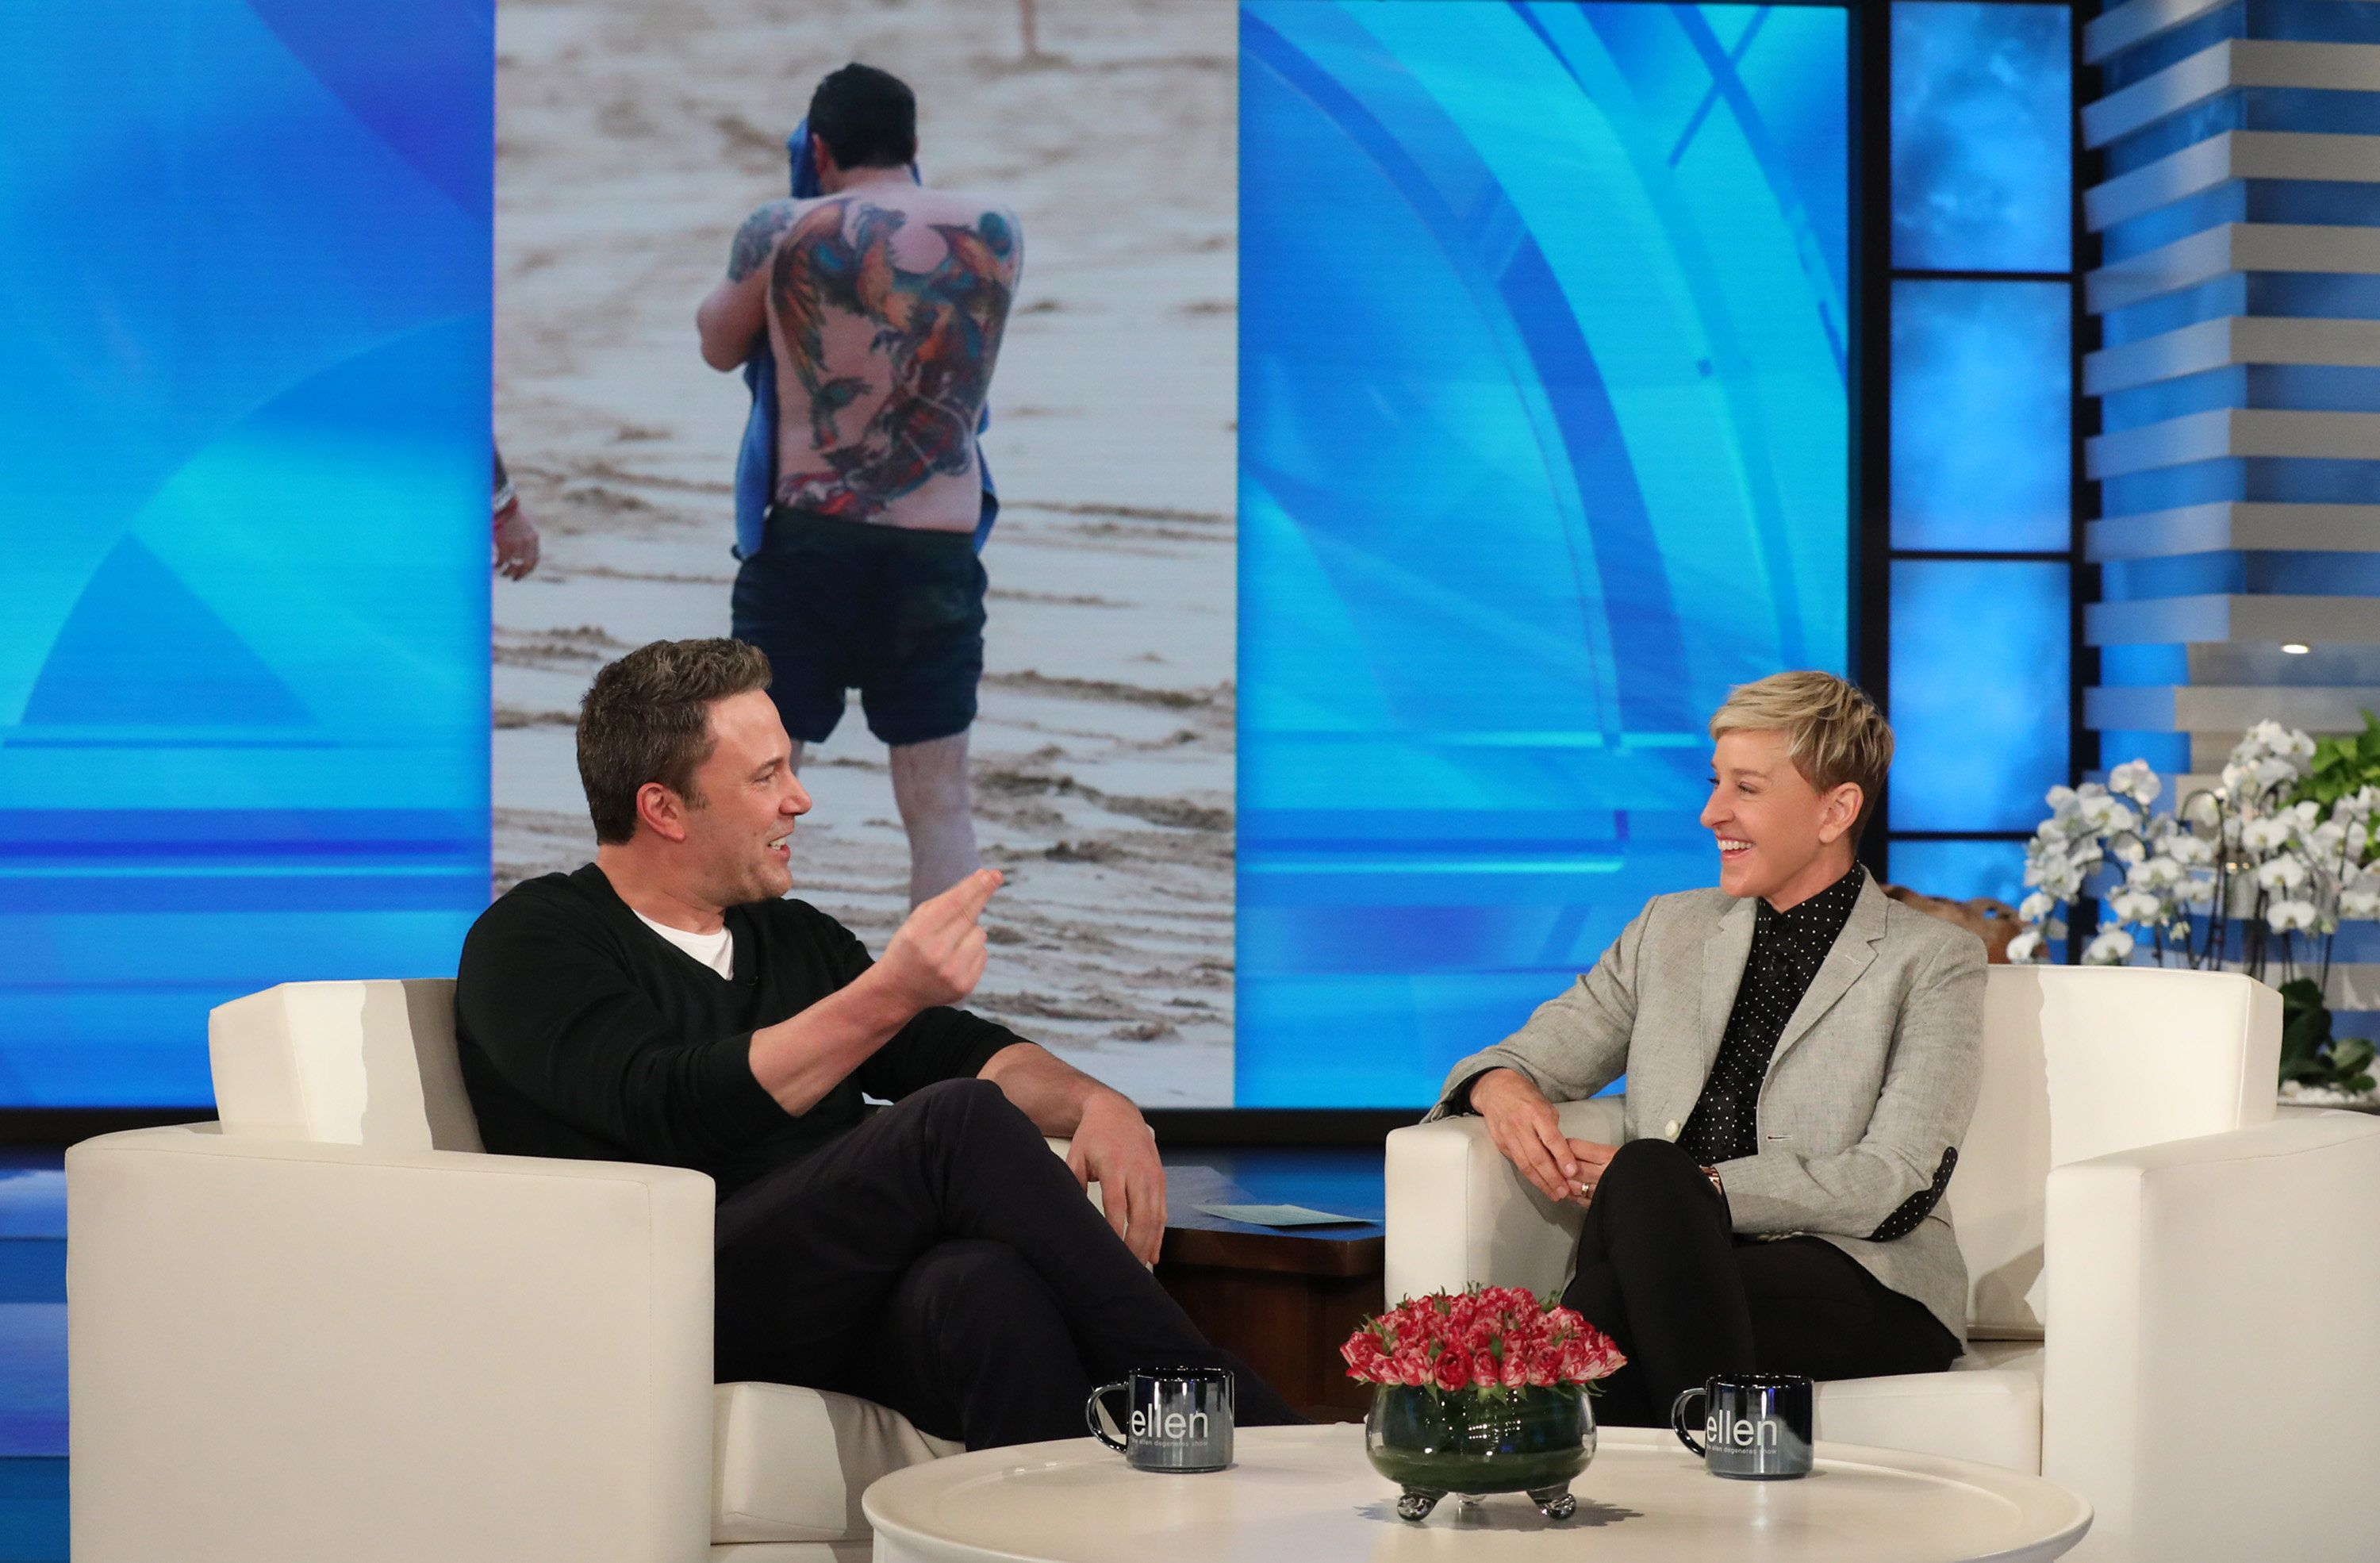 Ben Affleck chats about his tattoo with Ellen DeGeneres.